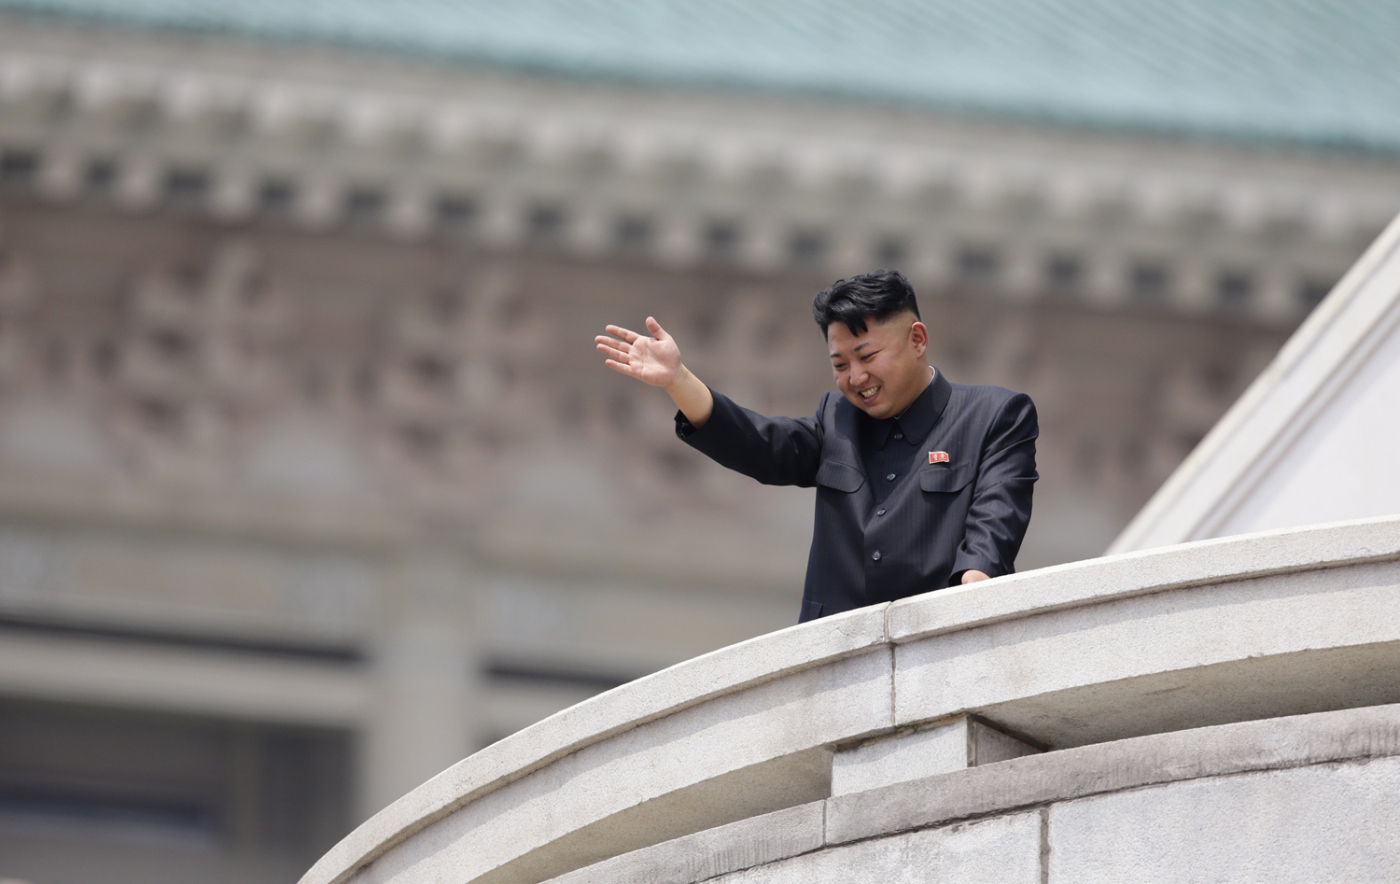 North Korean leader Kim Jong-un waves to the people during a parade to commemorate the 60th anniversary of the signing of a truce in the 1950-1953 Korean War, at Kim Il-sung Square in Pyongyang July 27, 2013.